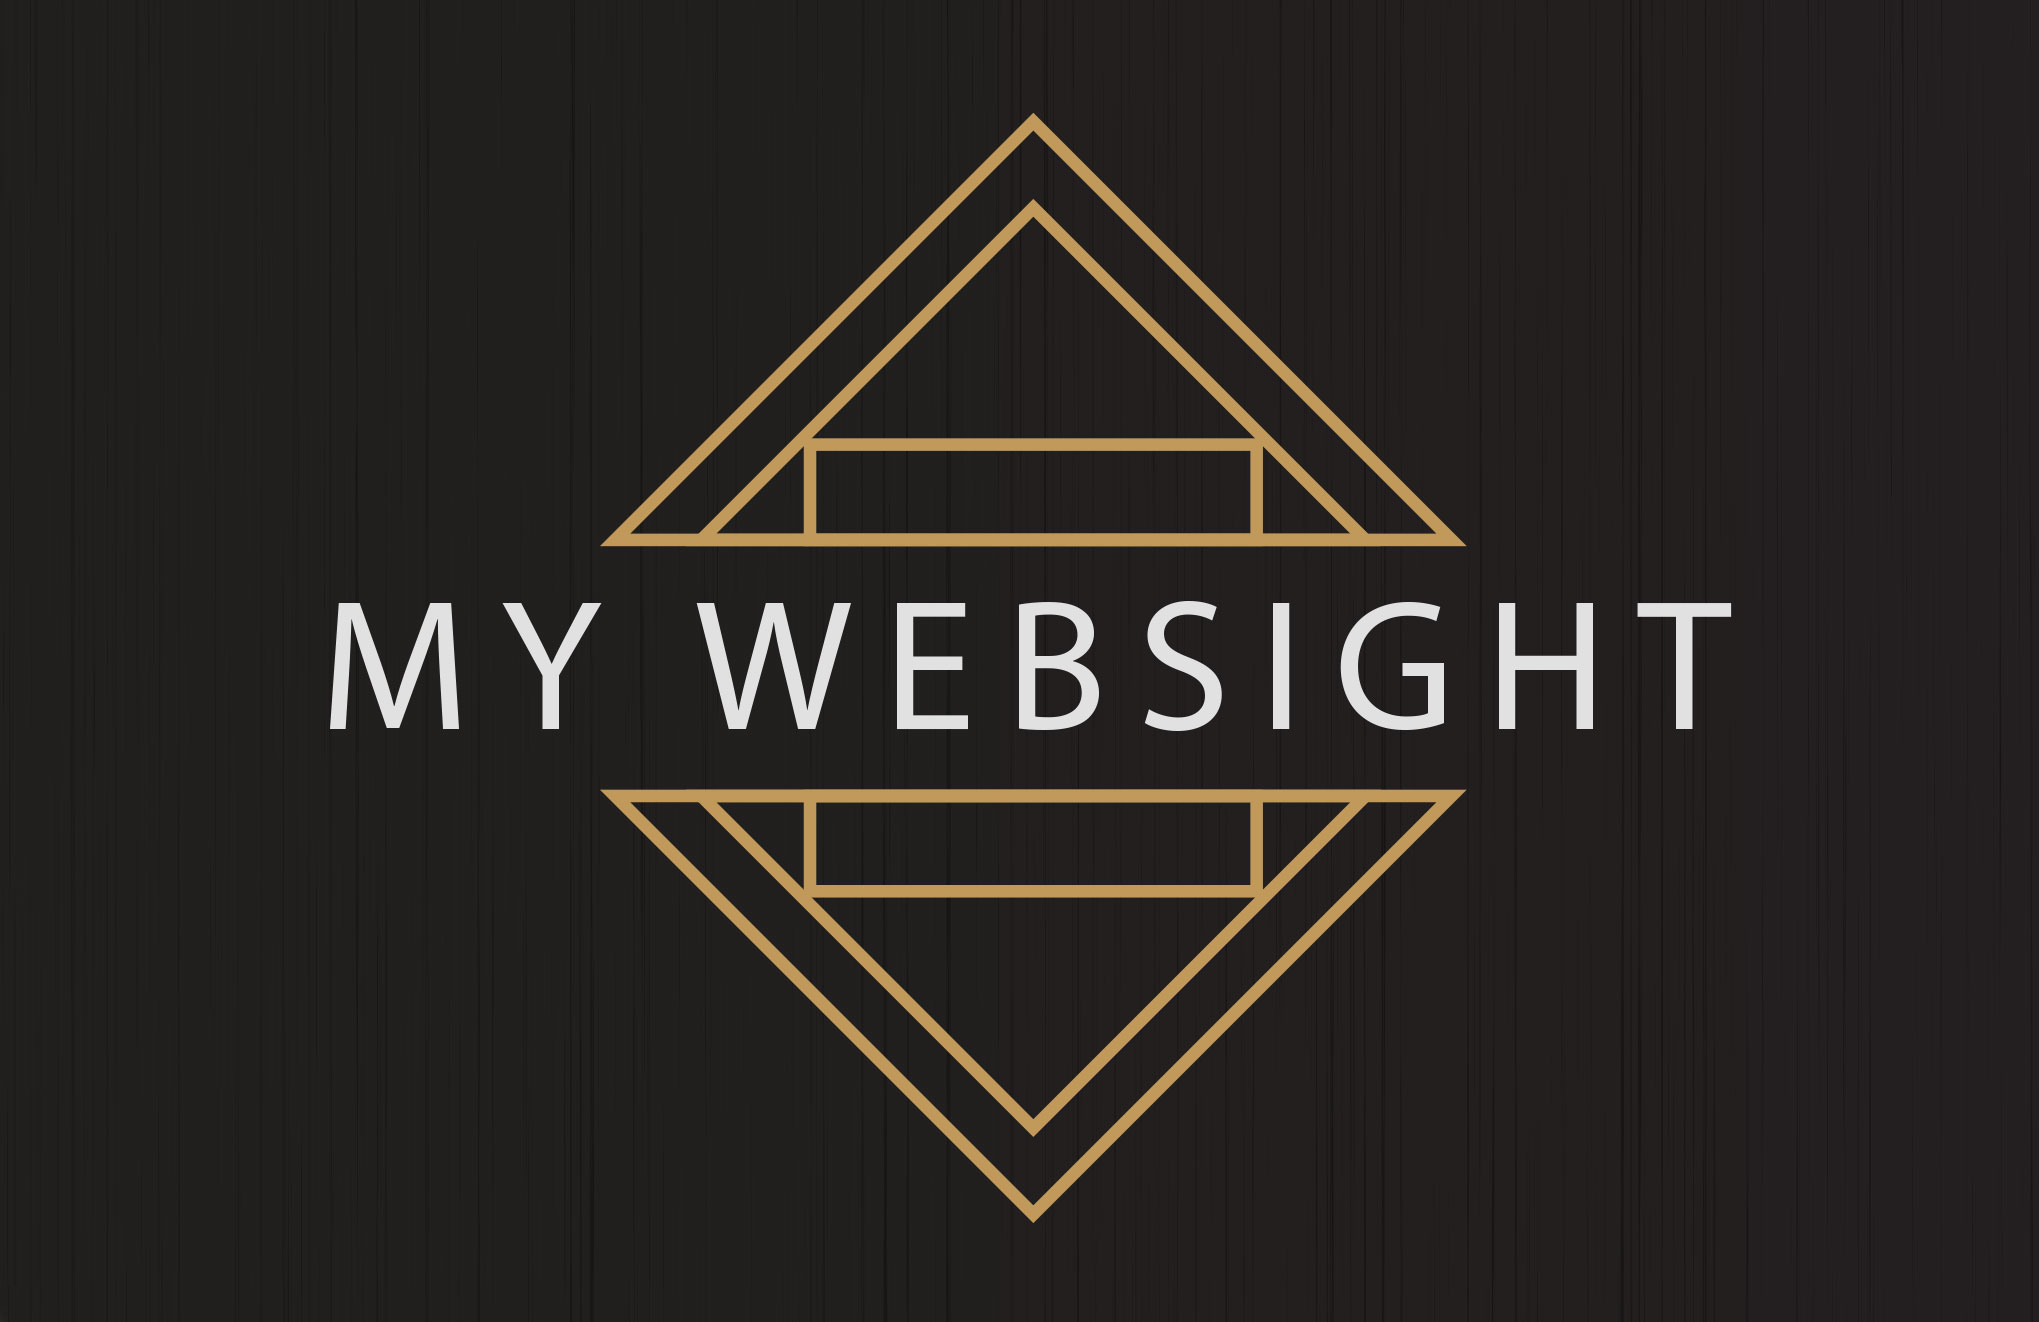 My Websight